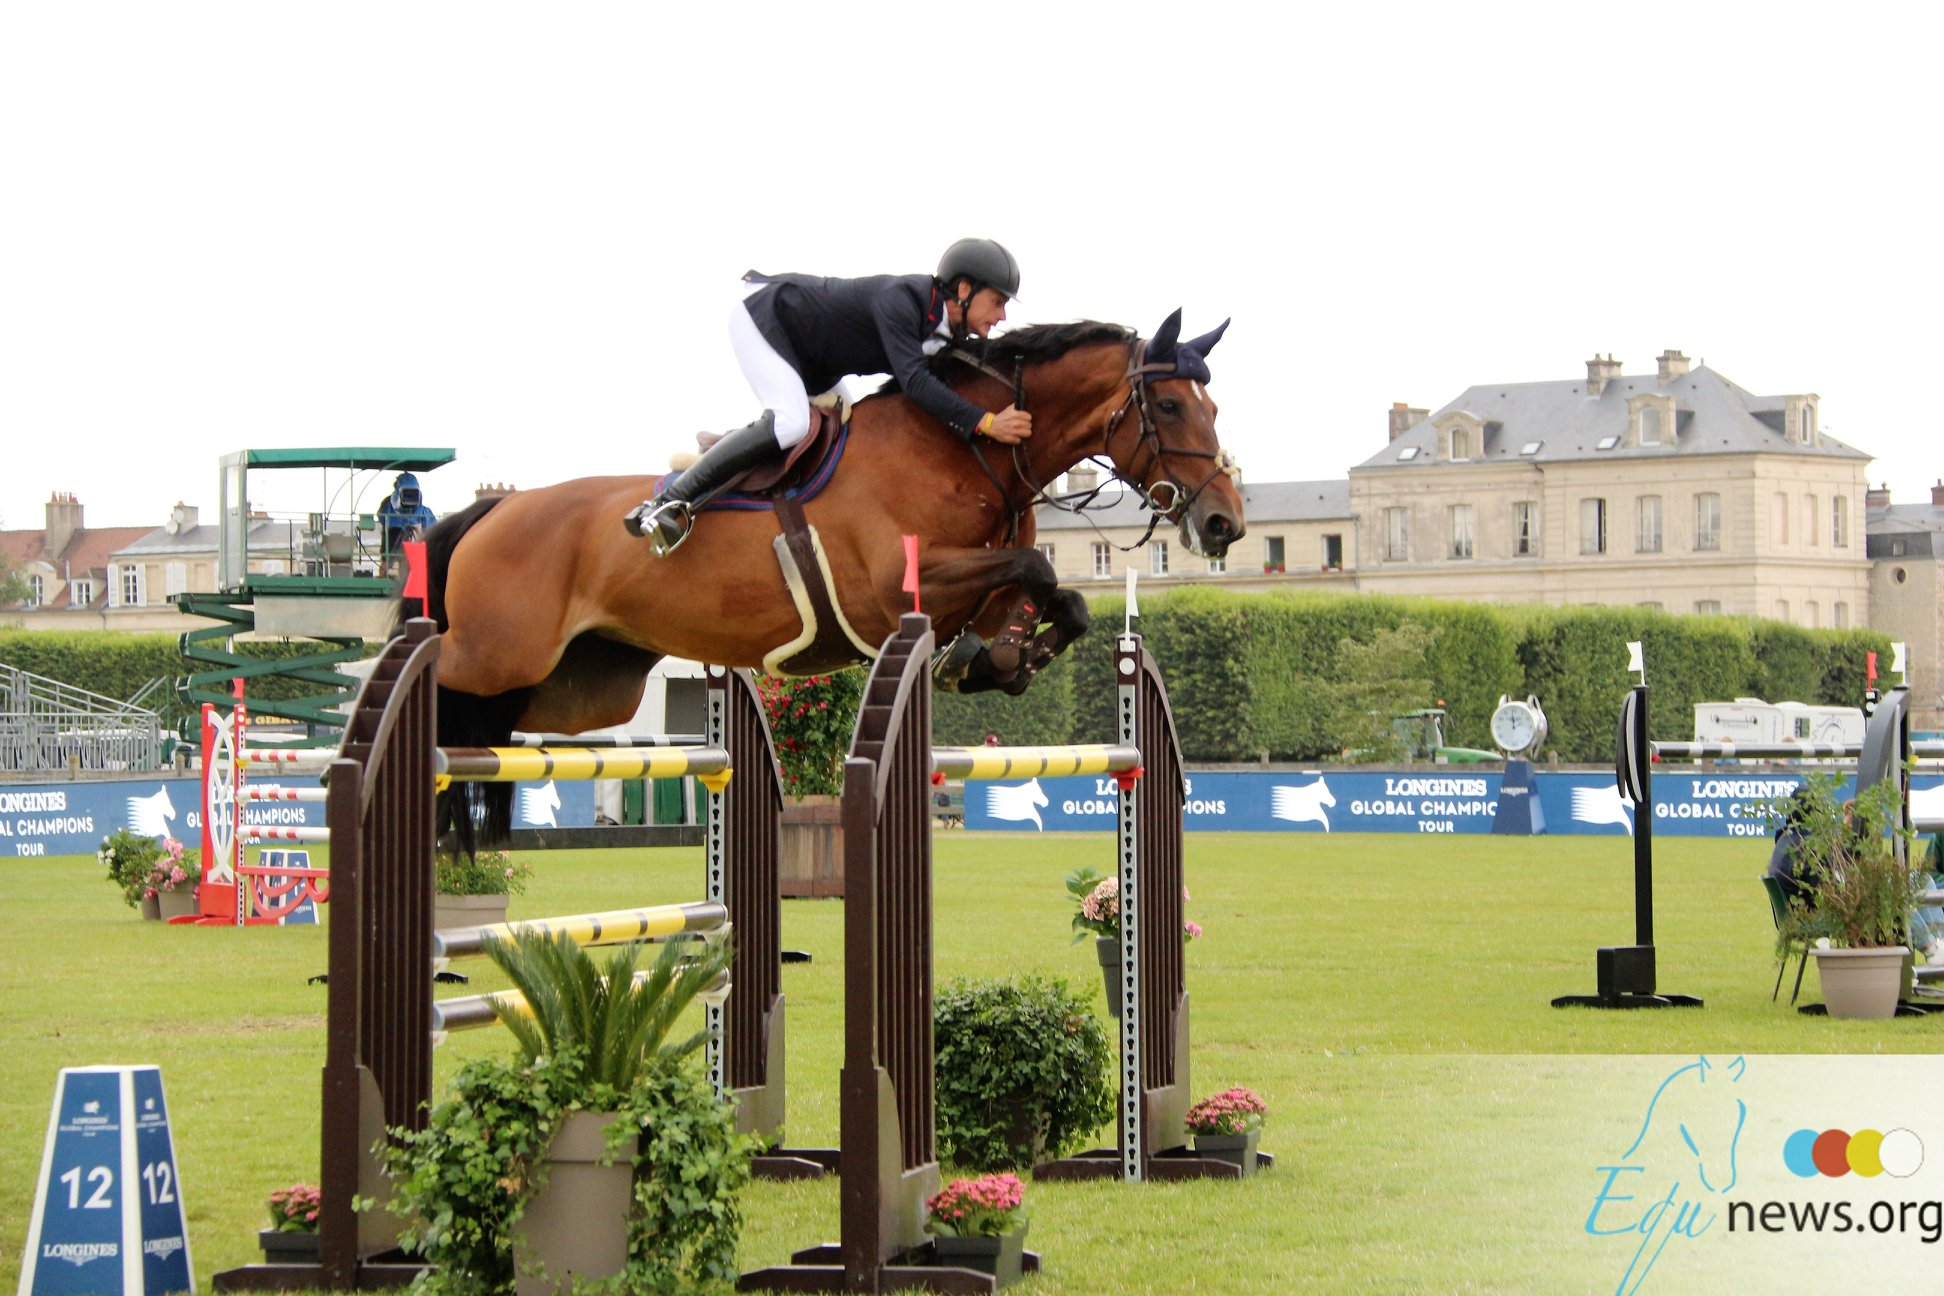 Victory for Leopold van Asten in LR class Chantilly